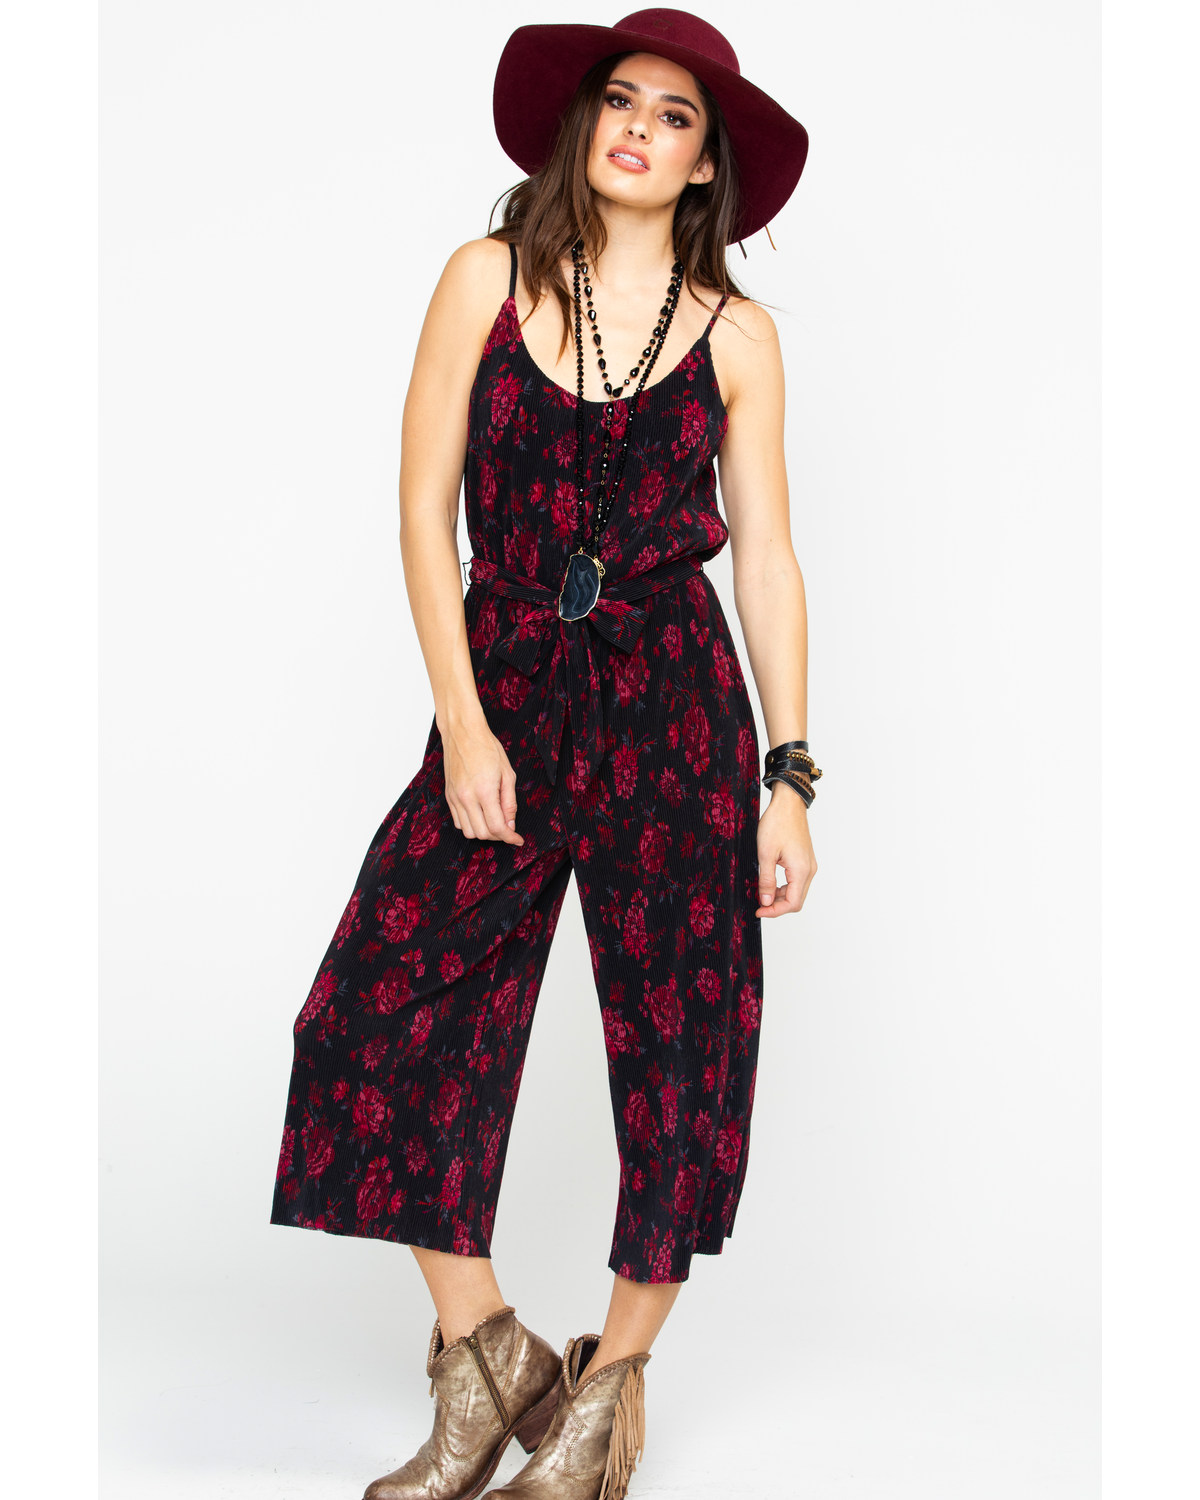 e785ab2251d3 Zoomed Image Eyeshadow Women's Pleated Floral Jumpsuit, Burgundy, ...